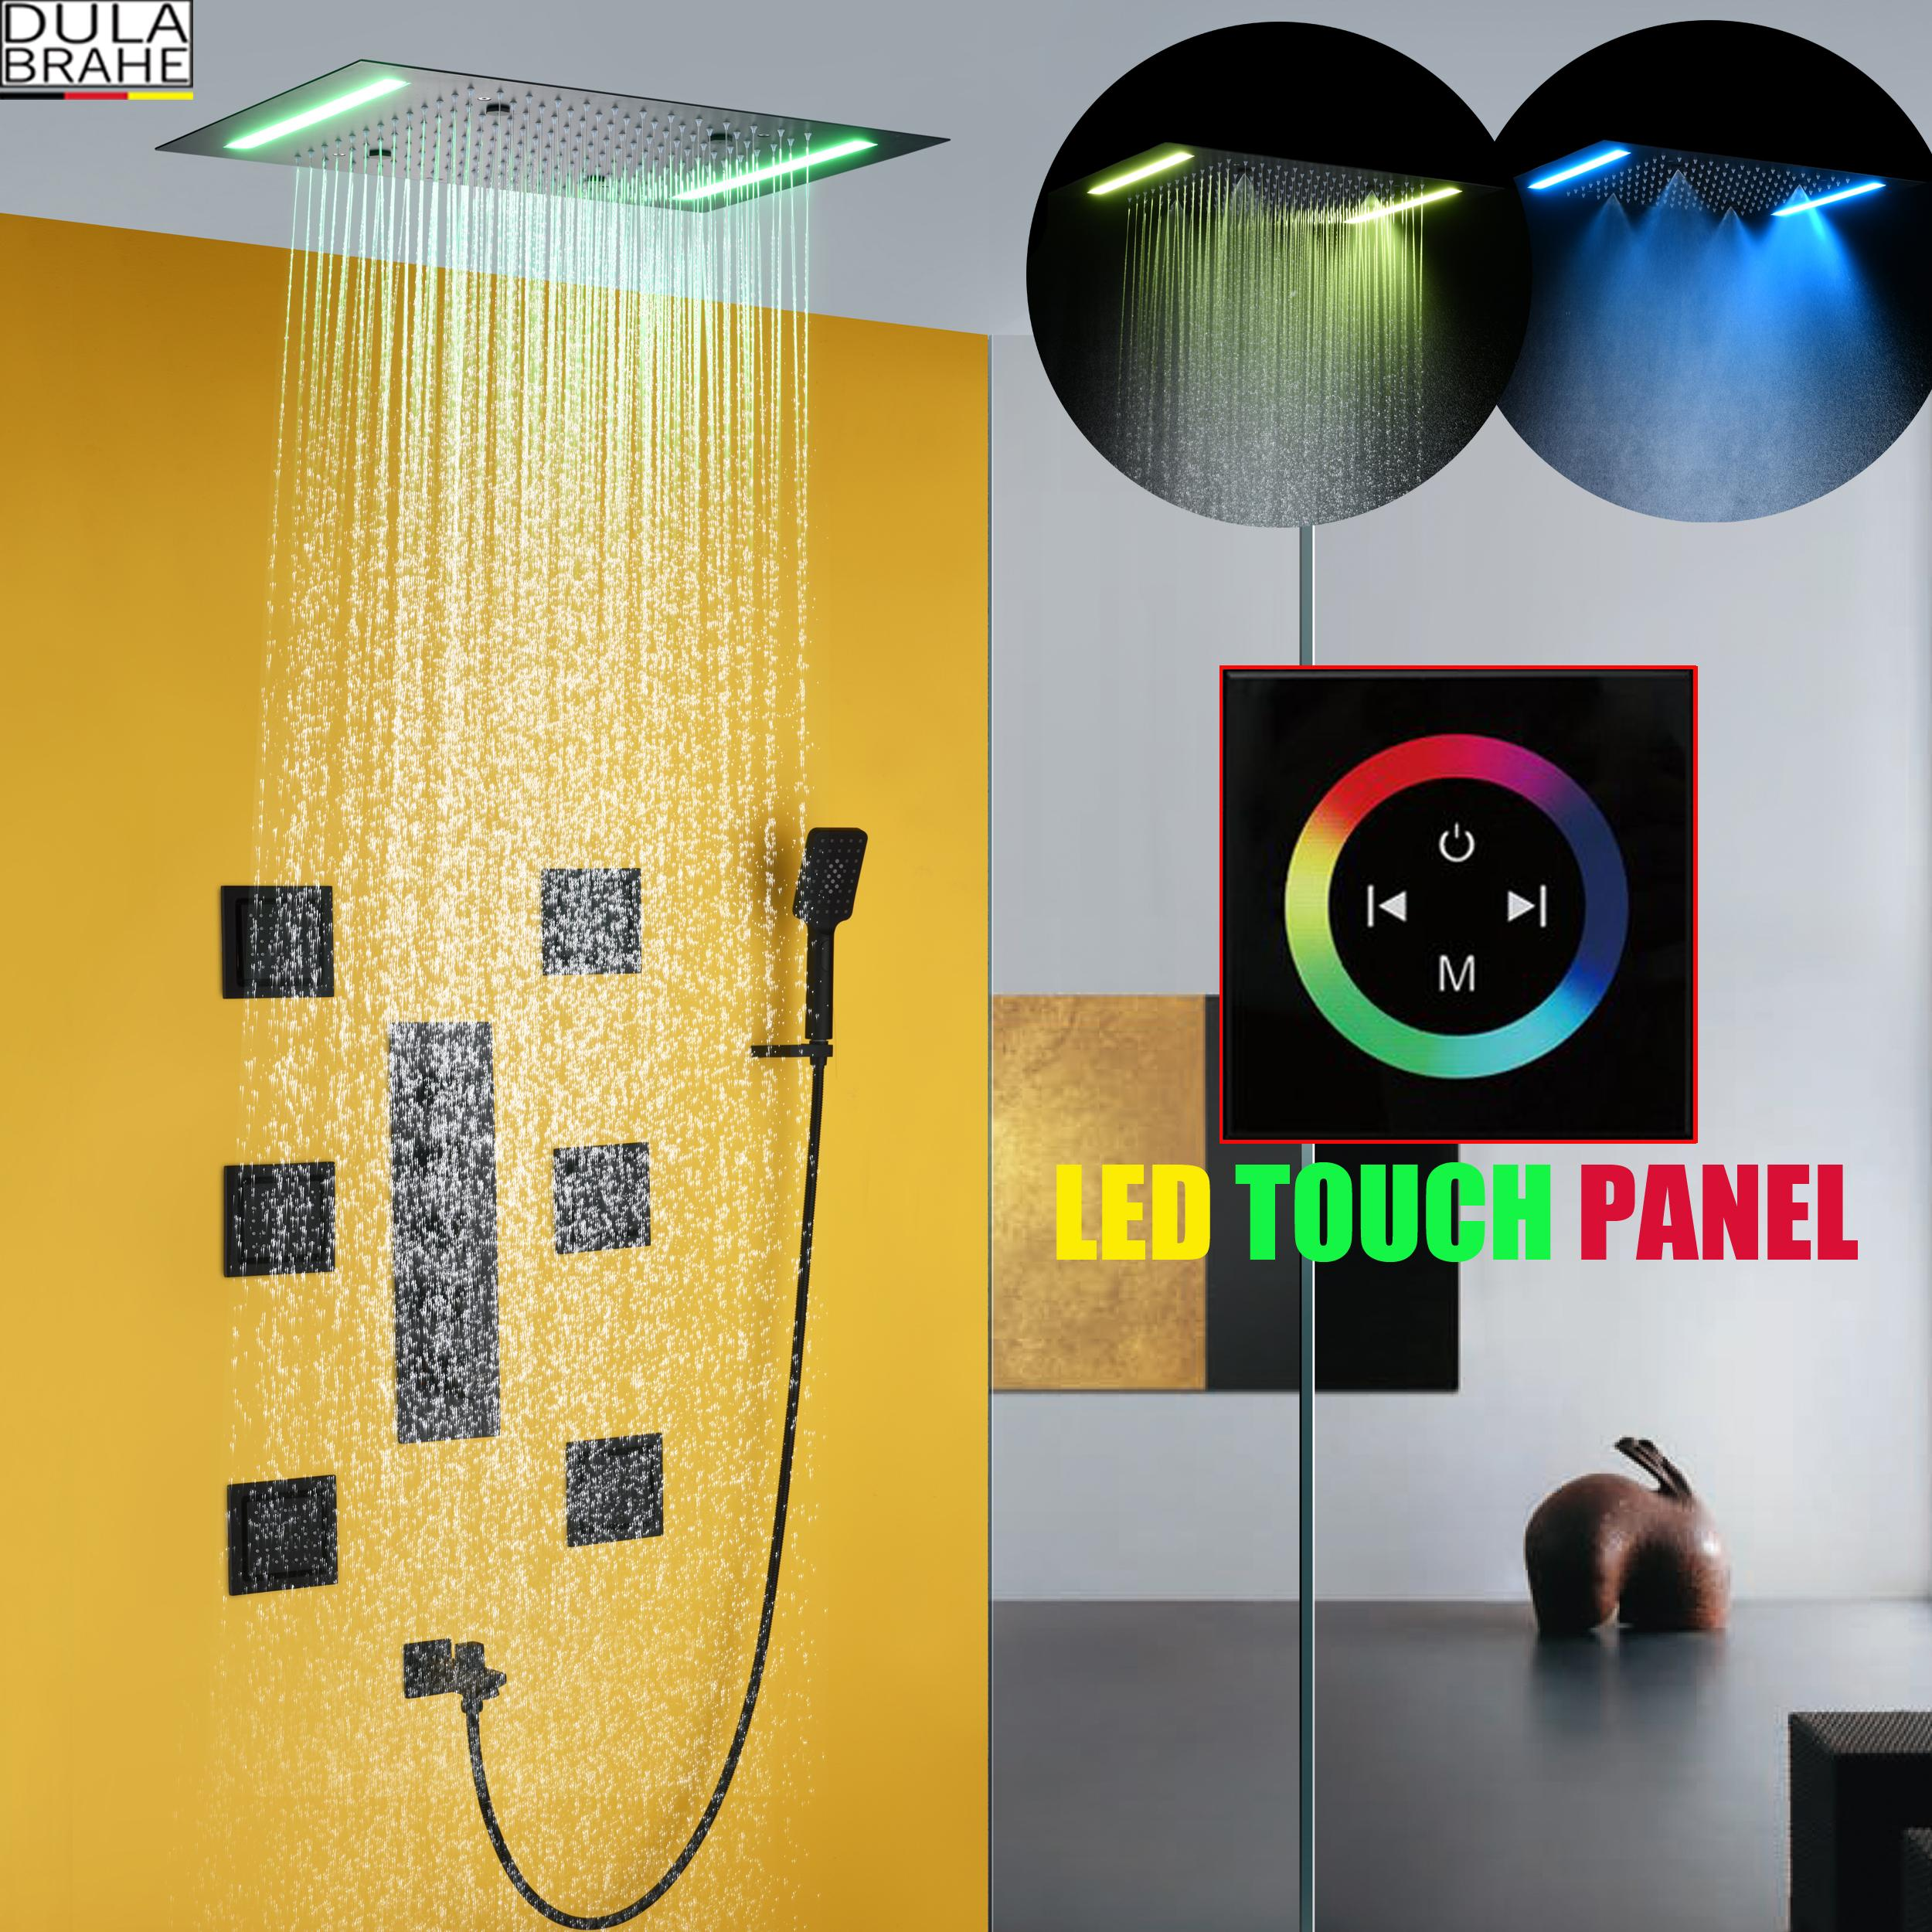 Bath Rain Shower Faucet Set Shower Panel System Bathroom Ceiling LED Shower Head Hot And Cold Or Thermostatic Bath Mixer